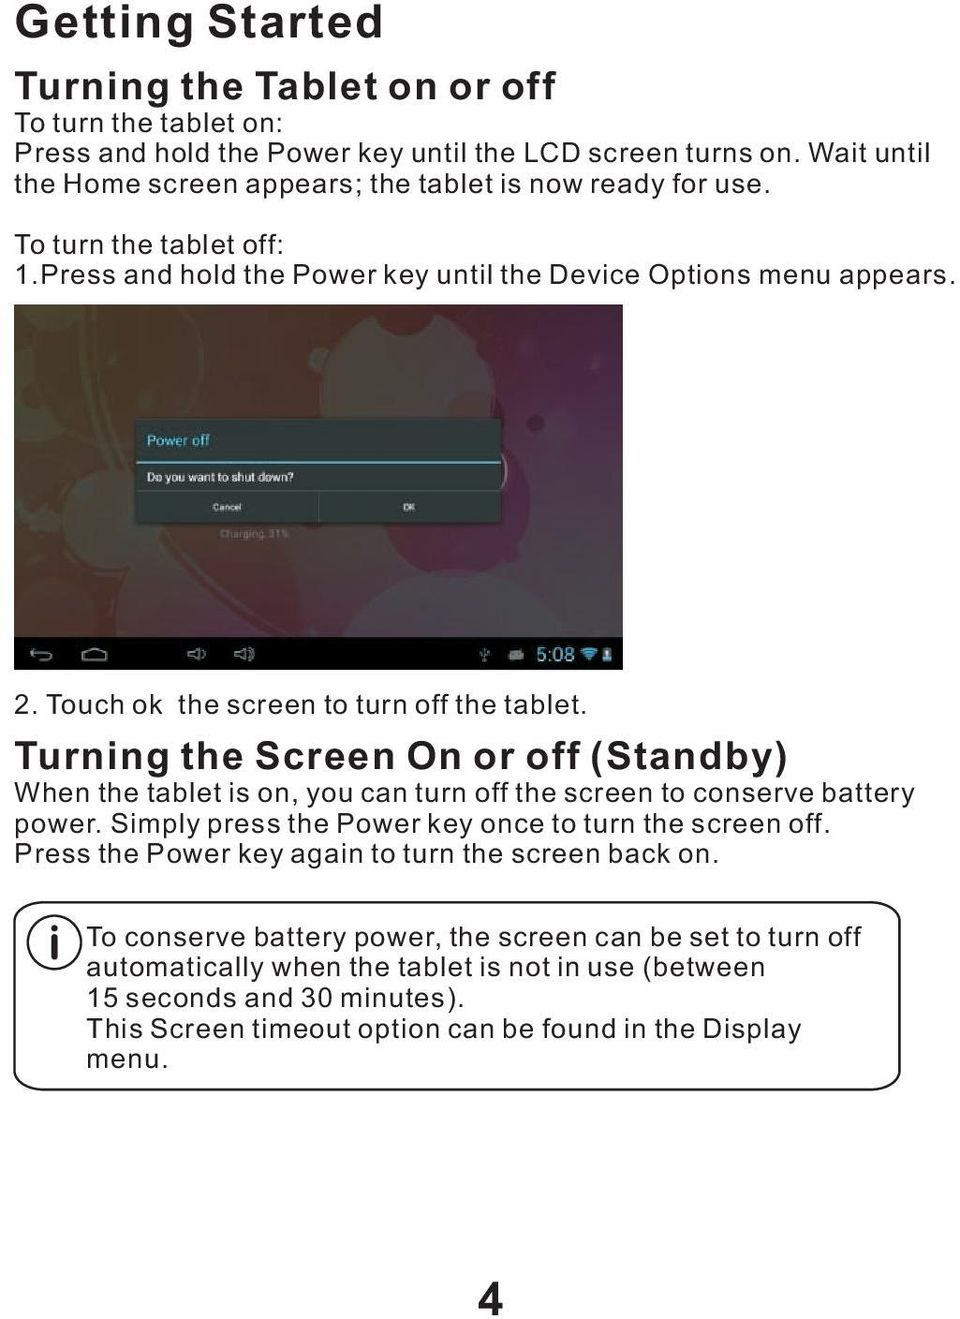 Touch ok the screen to turn off the tablet. Turning the Screen On or off (Standby) When the tablet is on, you can turn off the screen to conserve battery power.